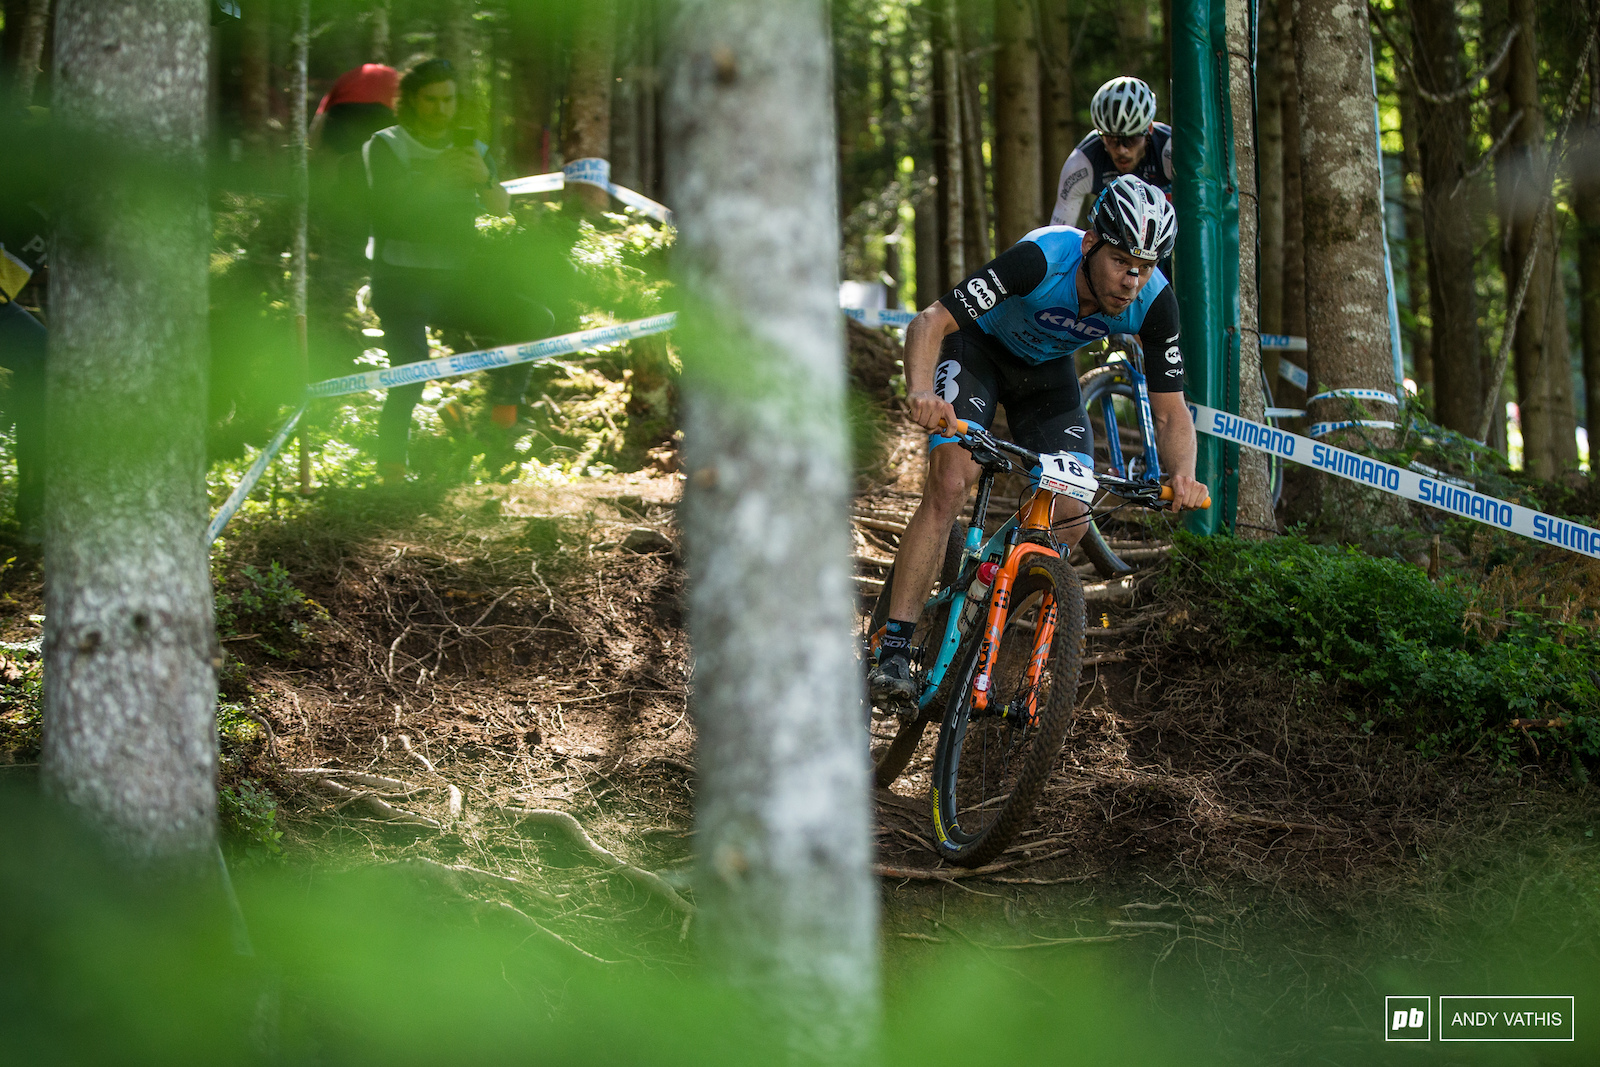 Sixth today for Thomas Litscher coming oh so close to passing Dascalu for the last podium step.